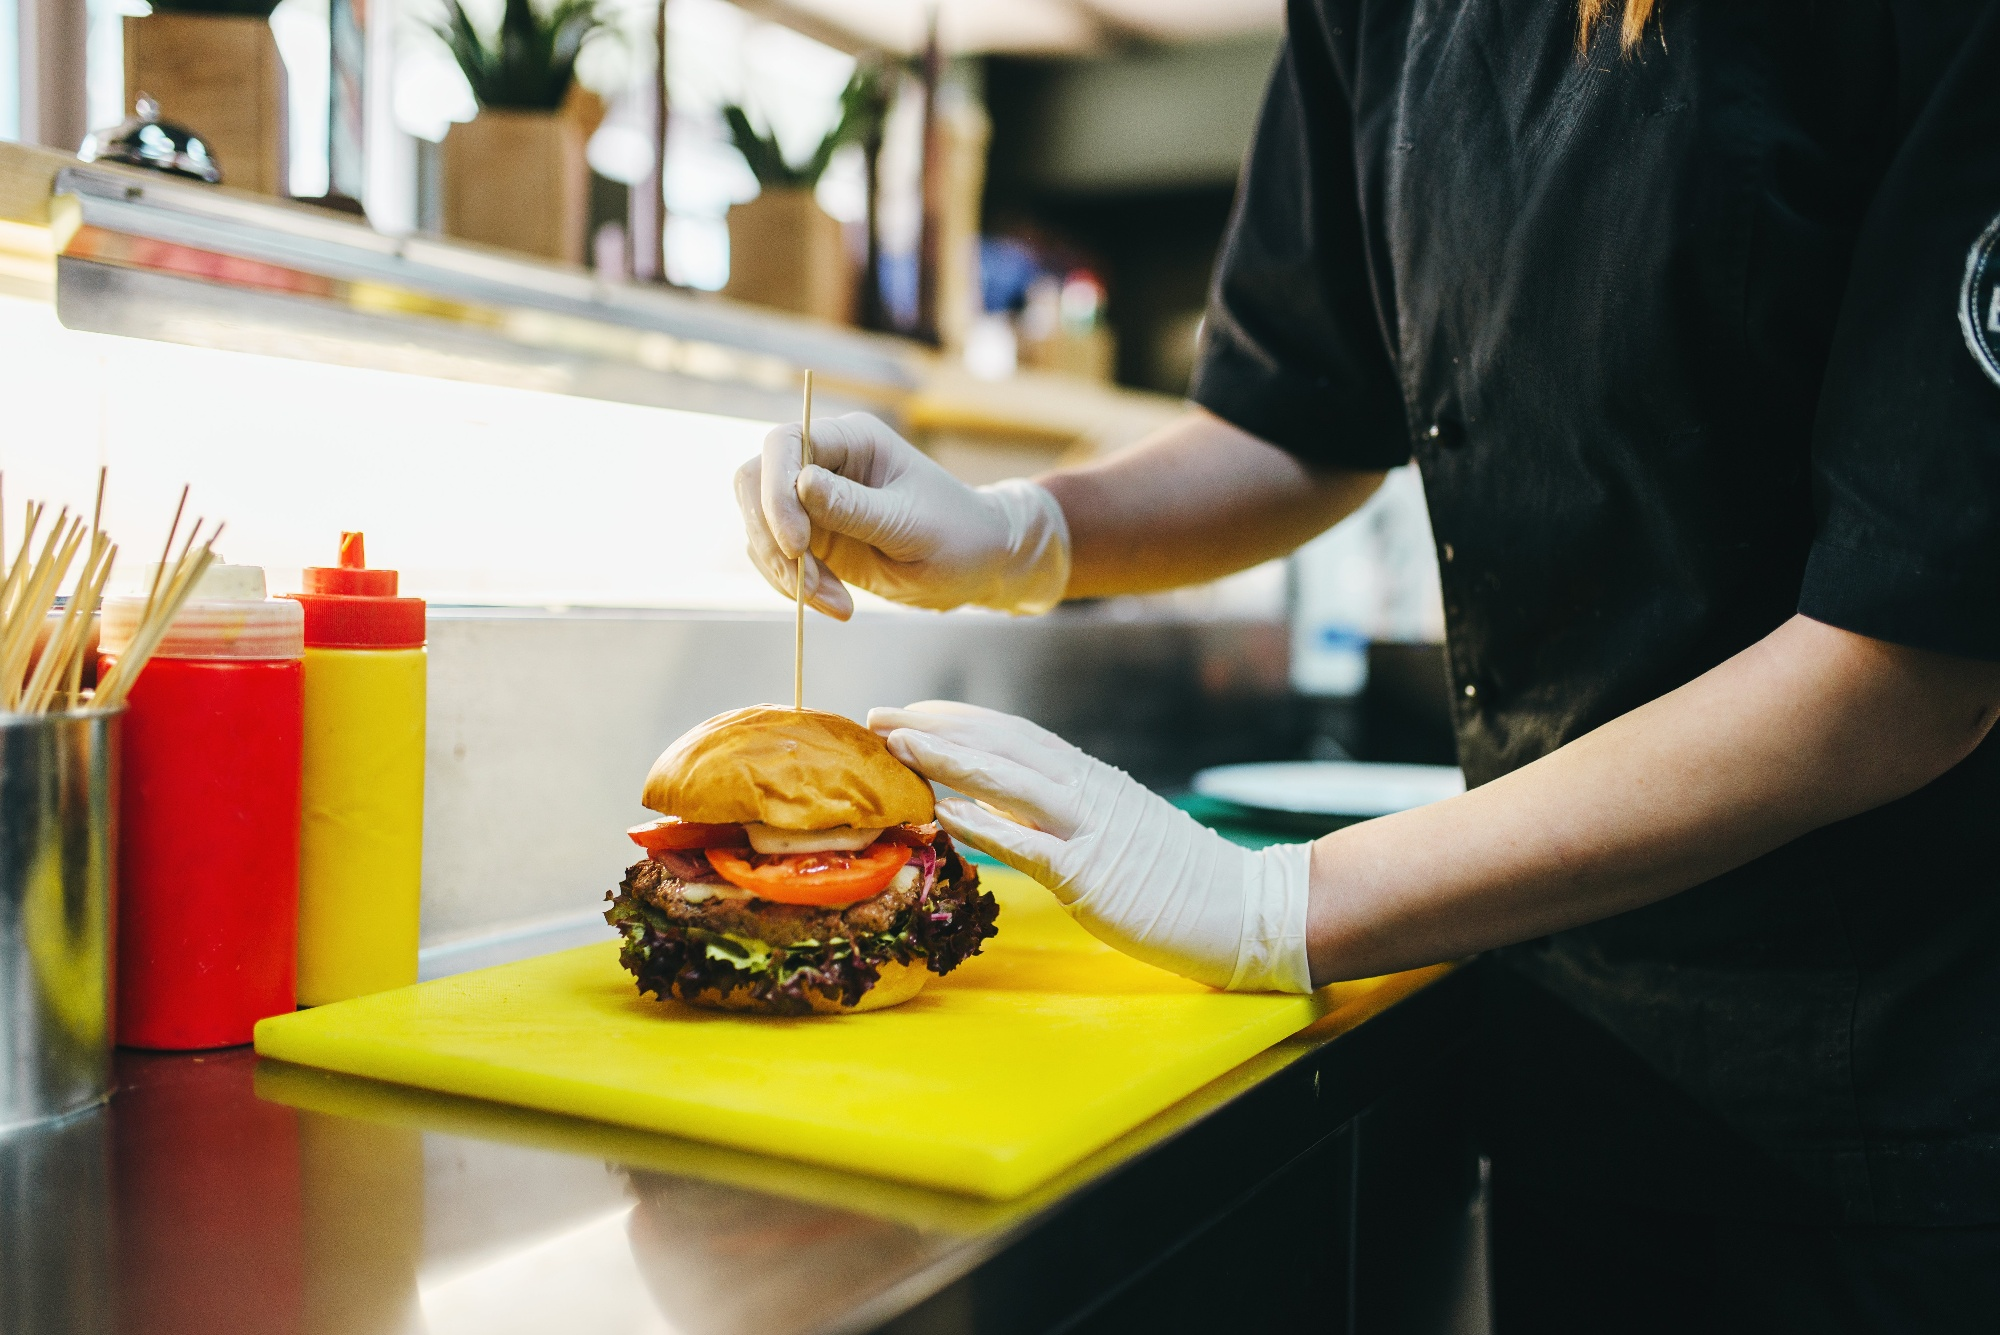 chef-prepares-burger-fast-food-cooking-LKXSWMV-1